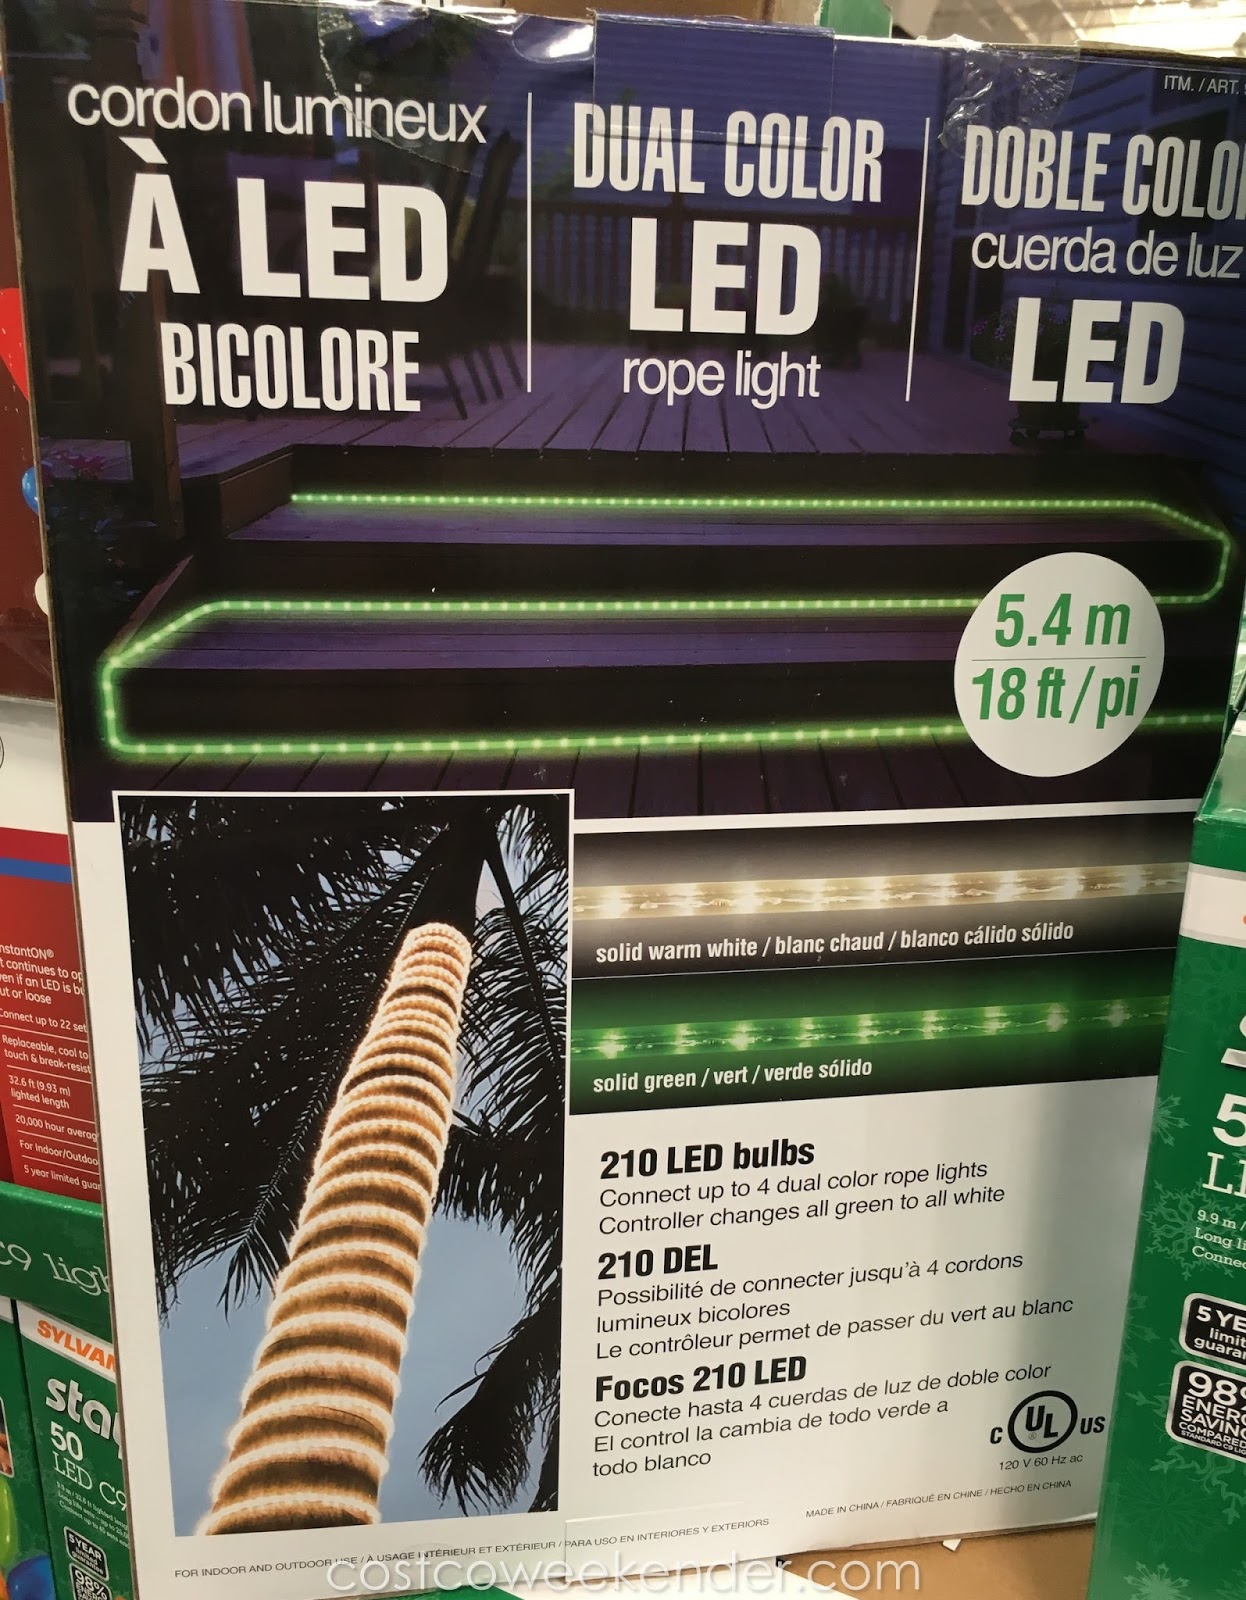 Dual color led rope light 18 ft costco weekender dual color led rope light great for christmas and the holidays aloadofball Gallery